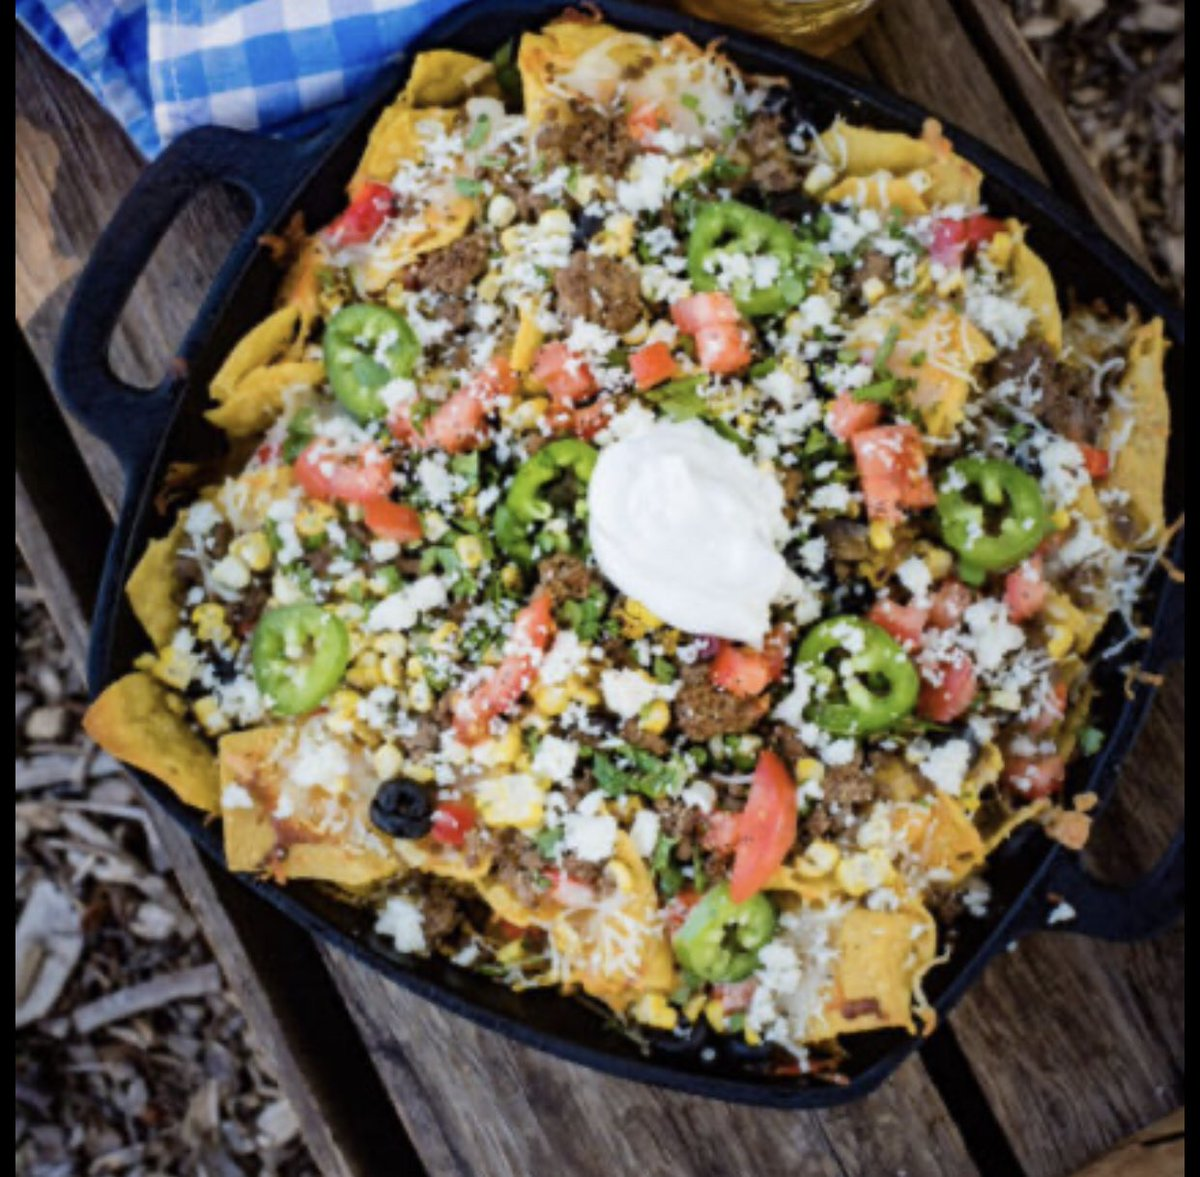 Camping and nachos. Two of my faves! #OzarksPrepared #Prepper #Shtf #Prepper #Bushcraft #Survival #FoodStorage #BugOutBag #GetHomeBag #Nature #Adventure #DIY #prepperfoodstorage #nachos #campfiremeals https://t.co/85lUAT5mO9